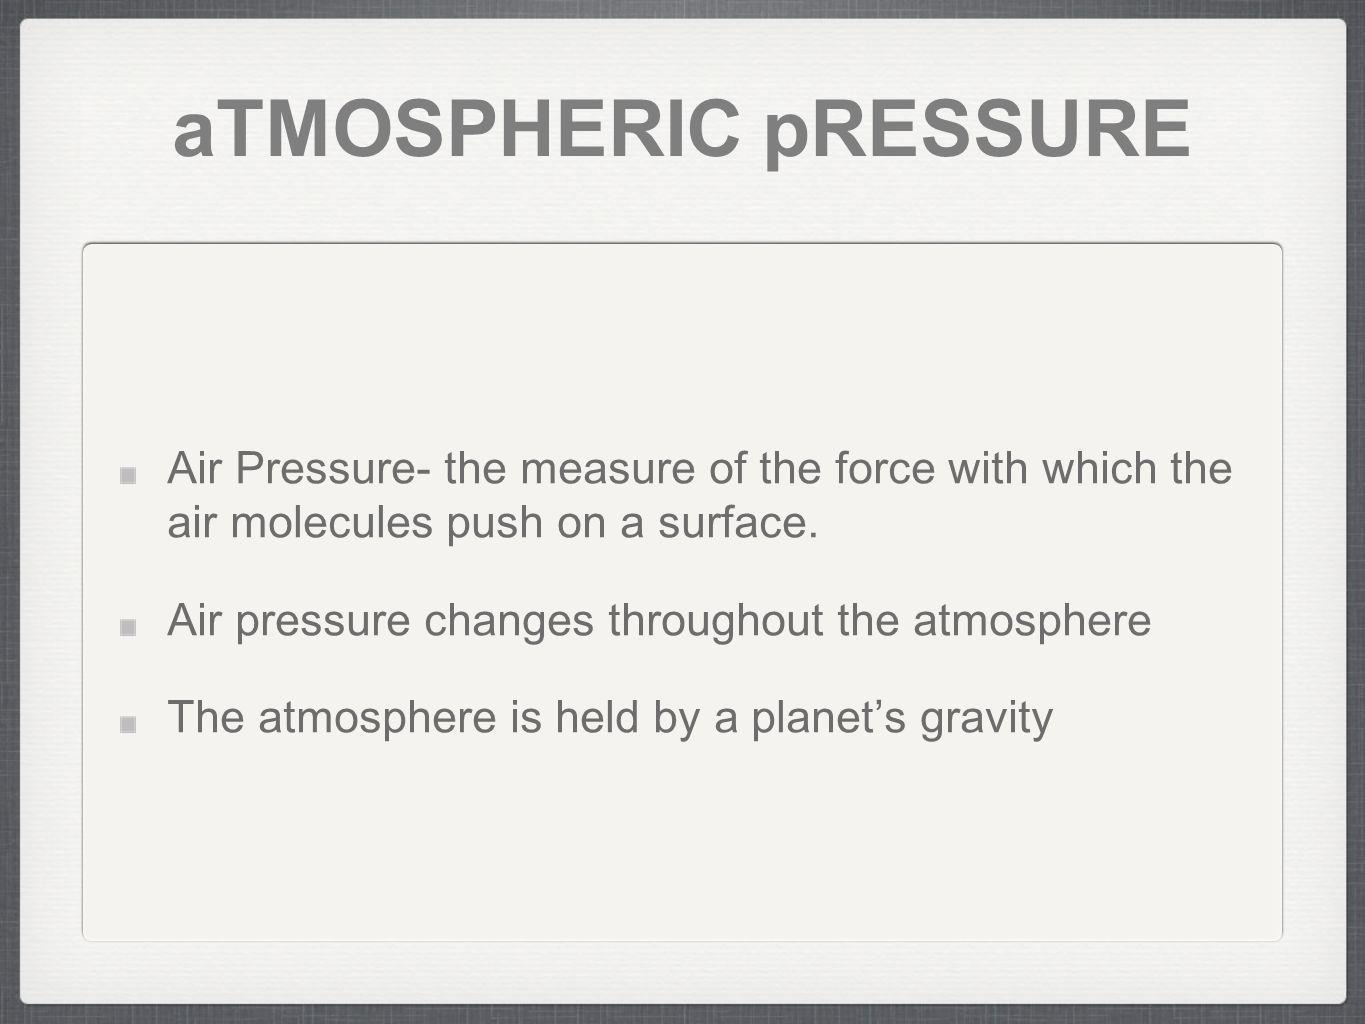 aTMOSPHERIC pRESSURE Air Pressure- the measure of the force with which the air molecules push on a surface. Air pressure changes throughout the atmosp